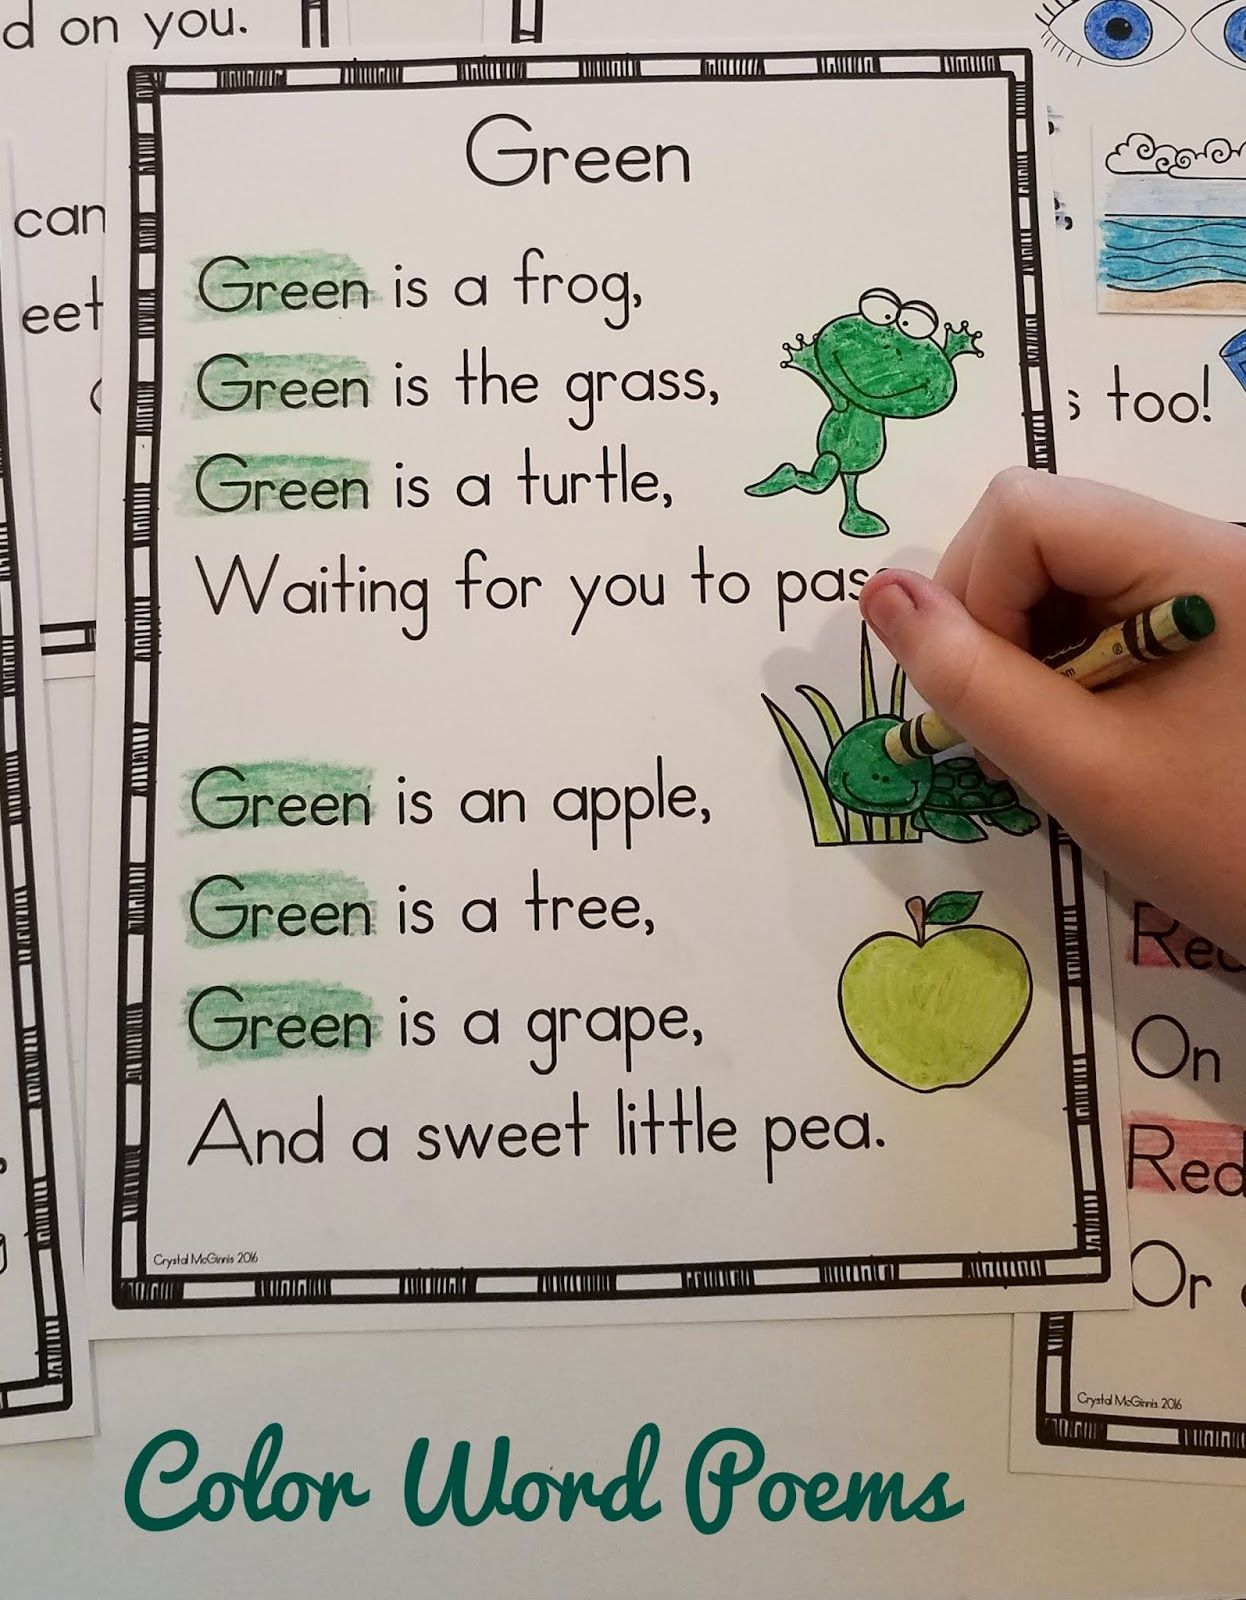 Color Word Poems For Shared Reading Mrs Mcginnis Little Zizzers Shape Poems For Kids Poetry For Kids Shared Reading Poems [ 1600 x 1246 Pixel ]